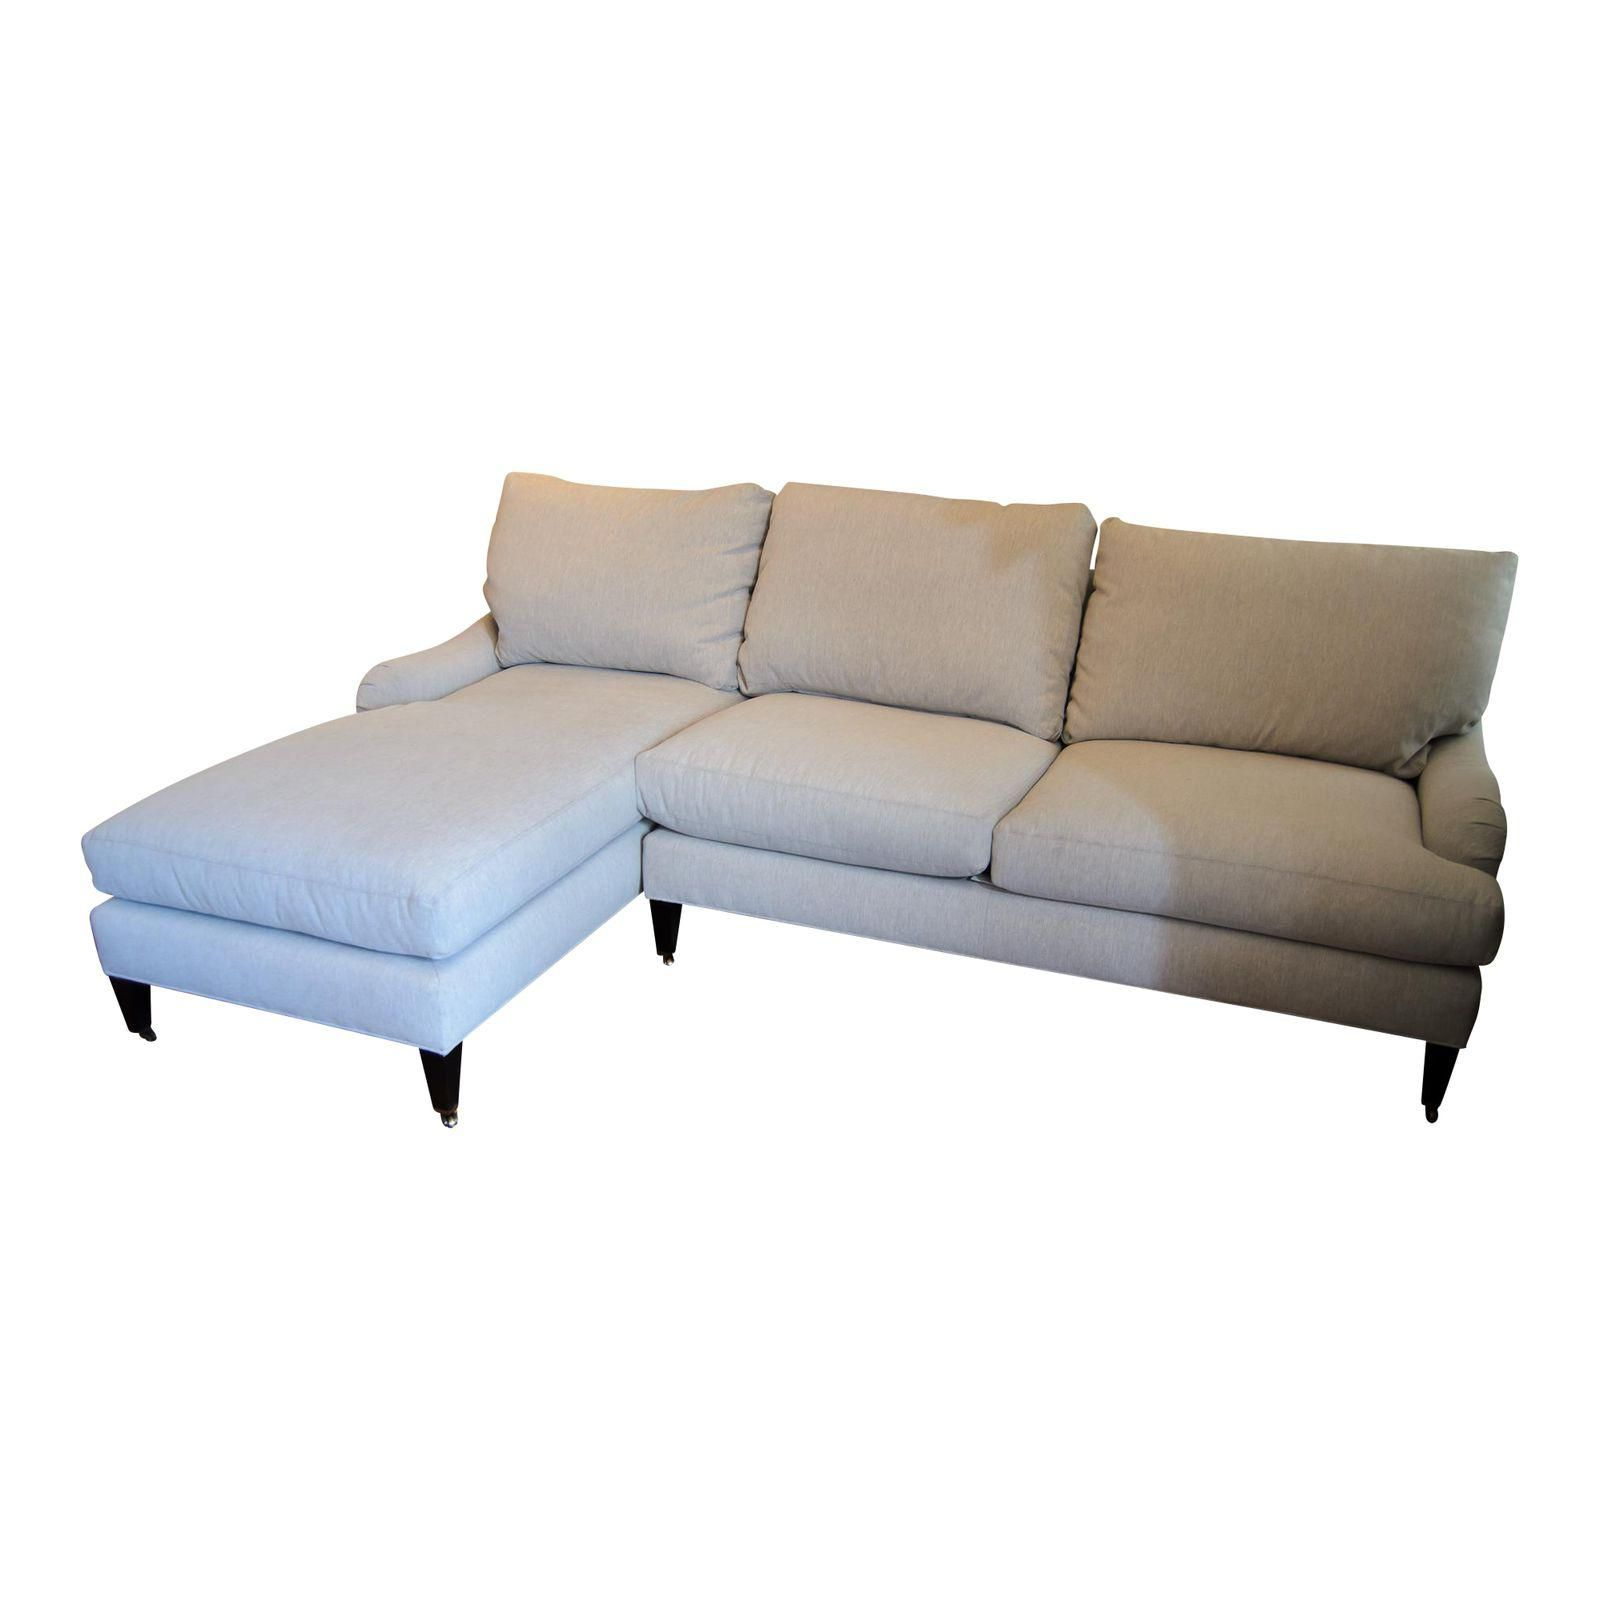 Attractive Lee Industries Contemporary Gray Sectional